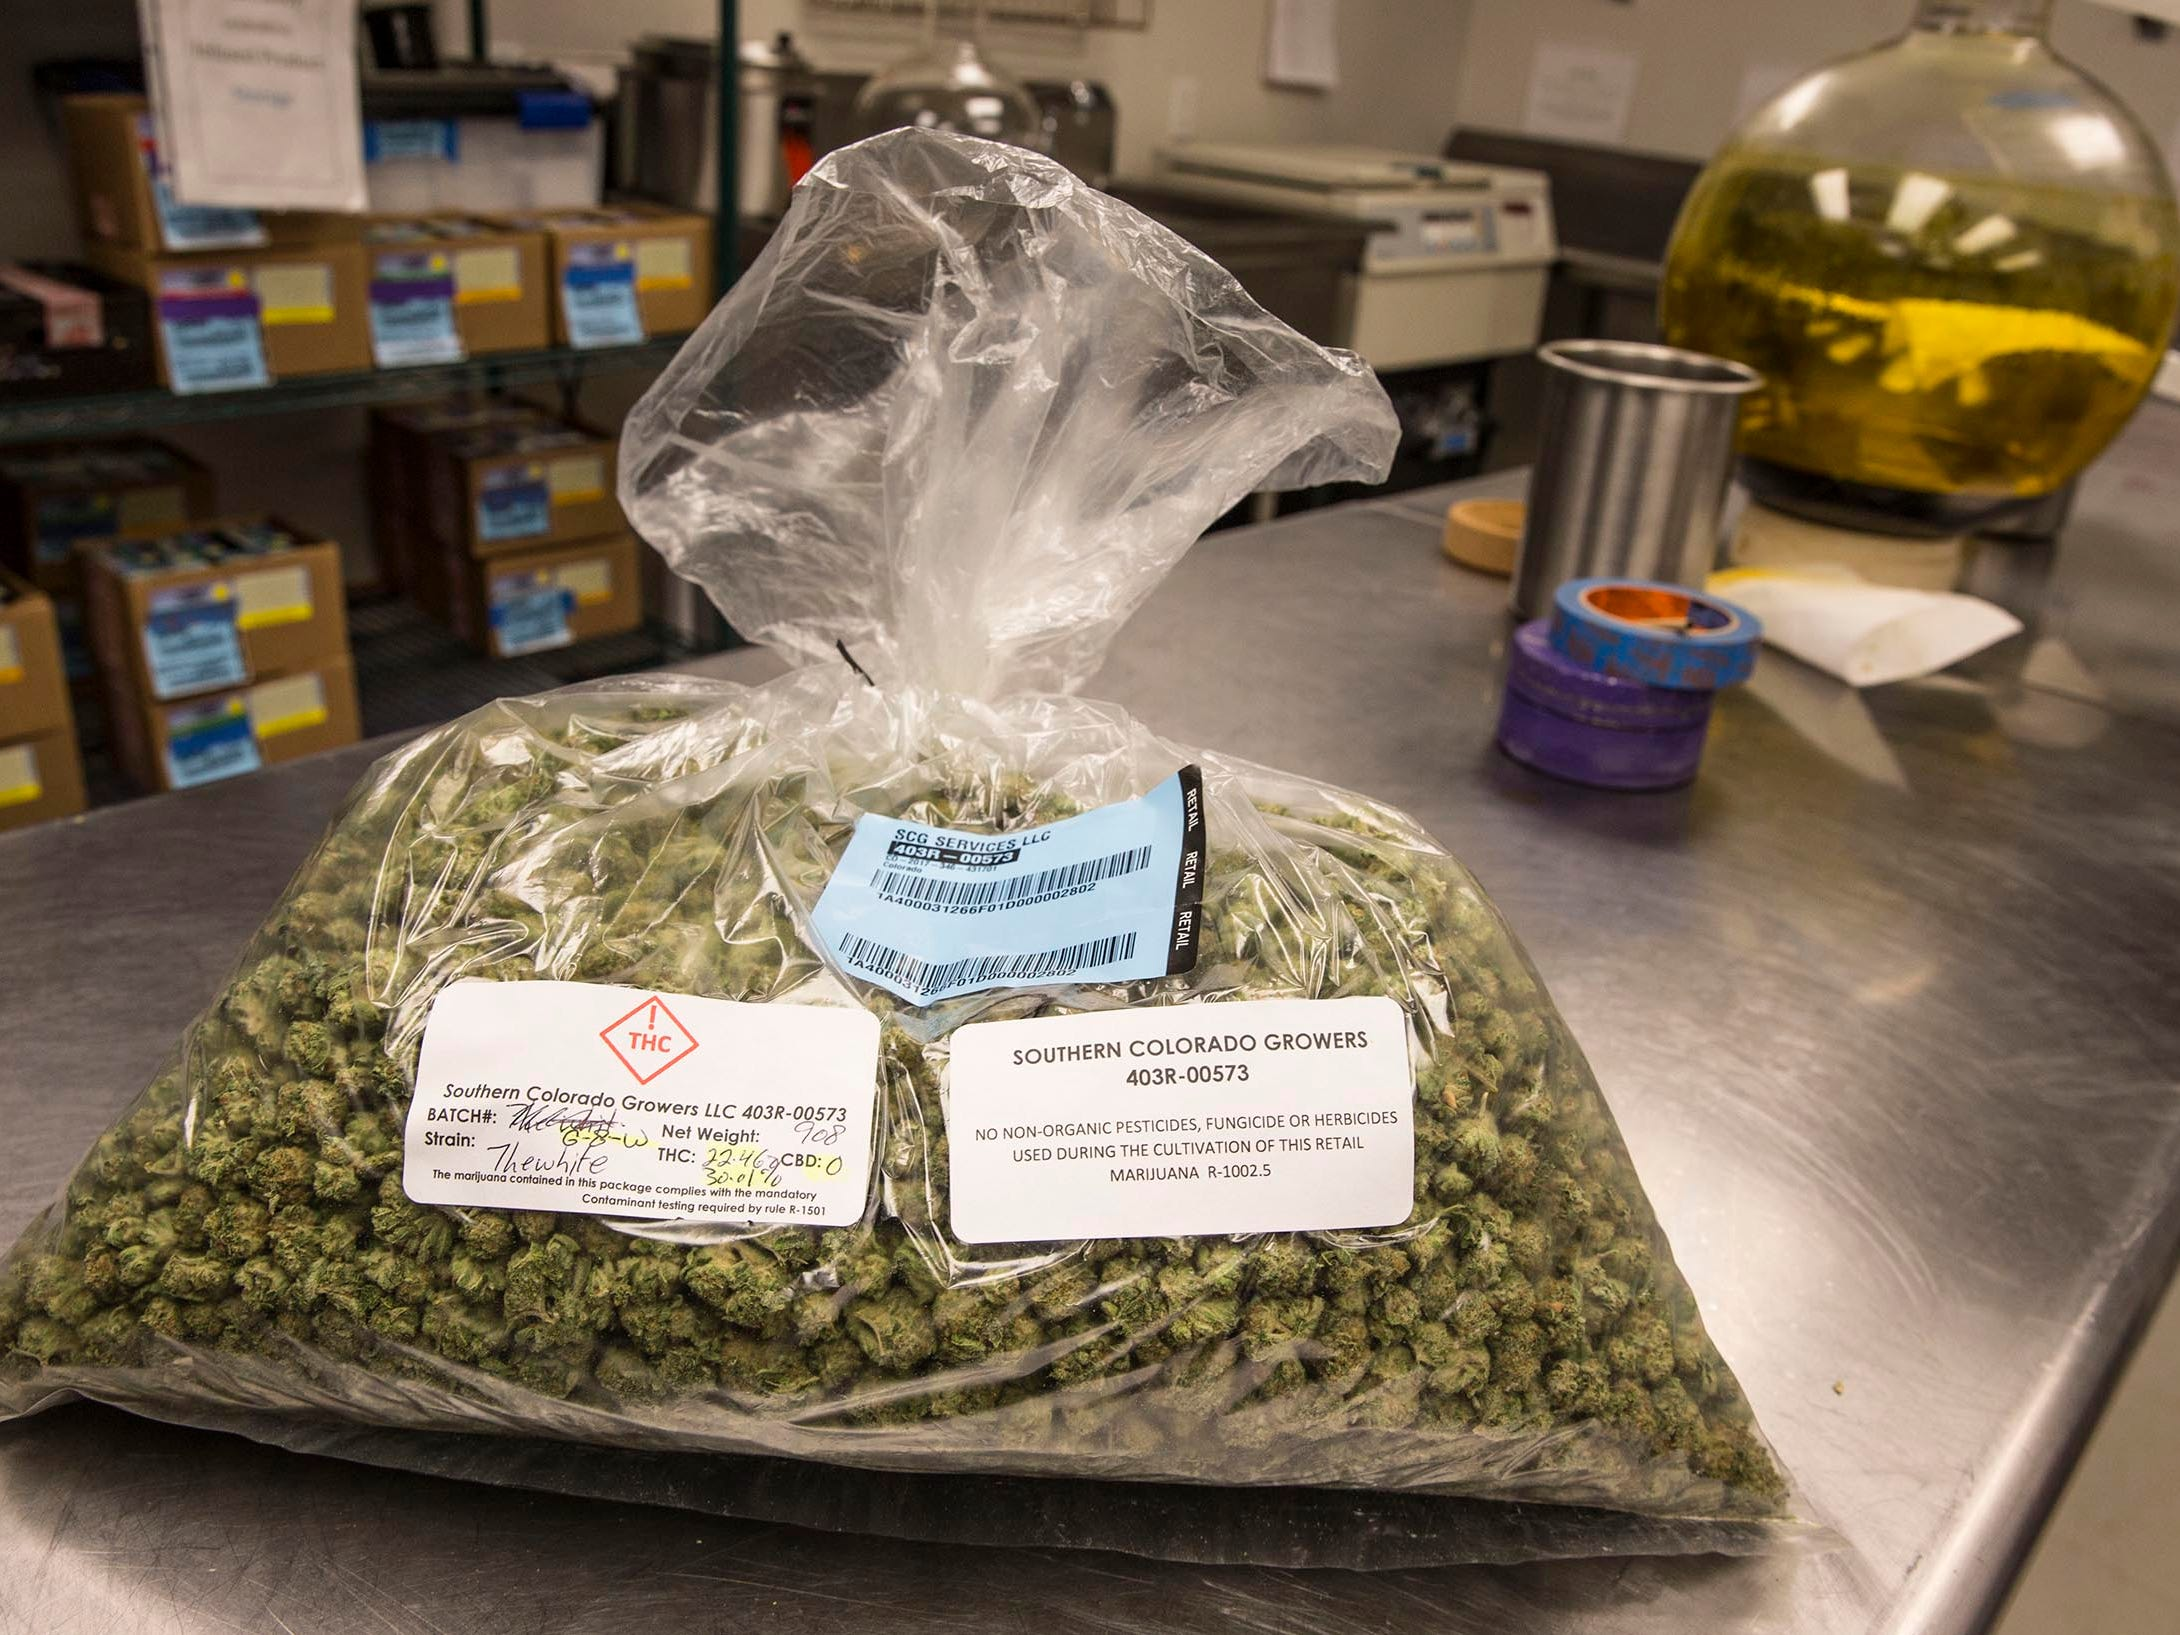 Mesa Organics offers various forms of cannabis including flower, concentrates, edibles, and topicals. They specialize in extraction to create various forms cannabis for consumption. Three pound bag of 'the white' strain.  Pueblo, CO on Wednesday, April 11, 2018